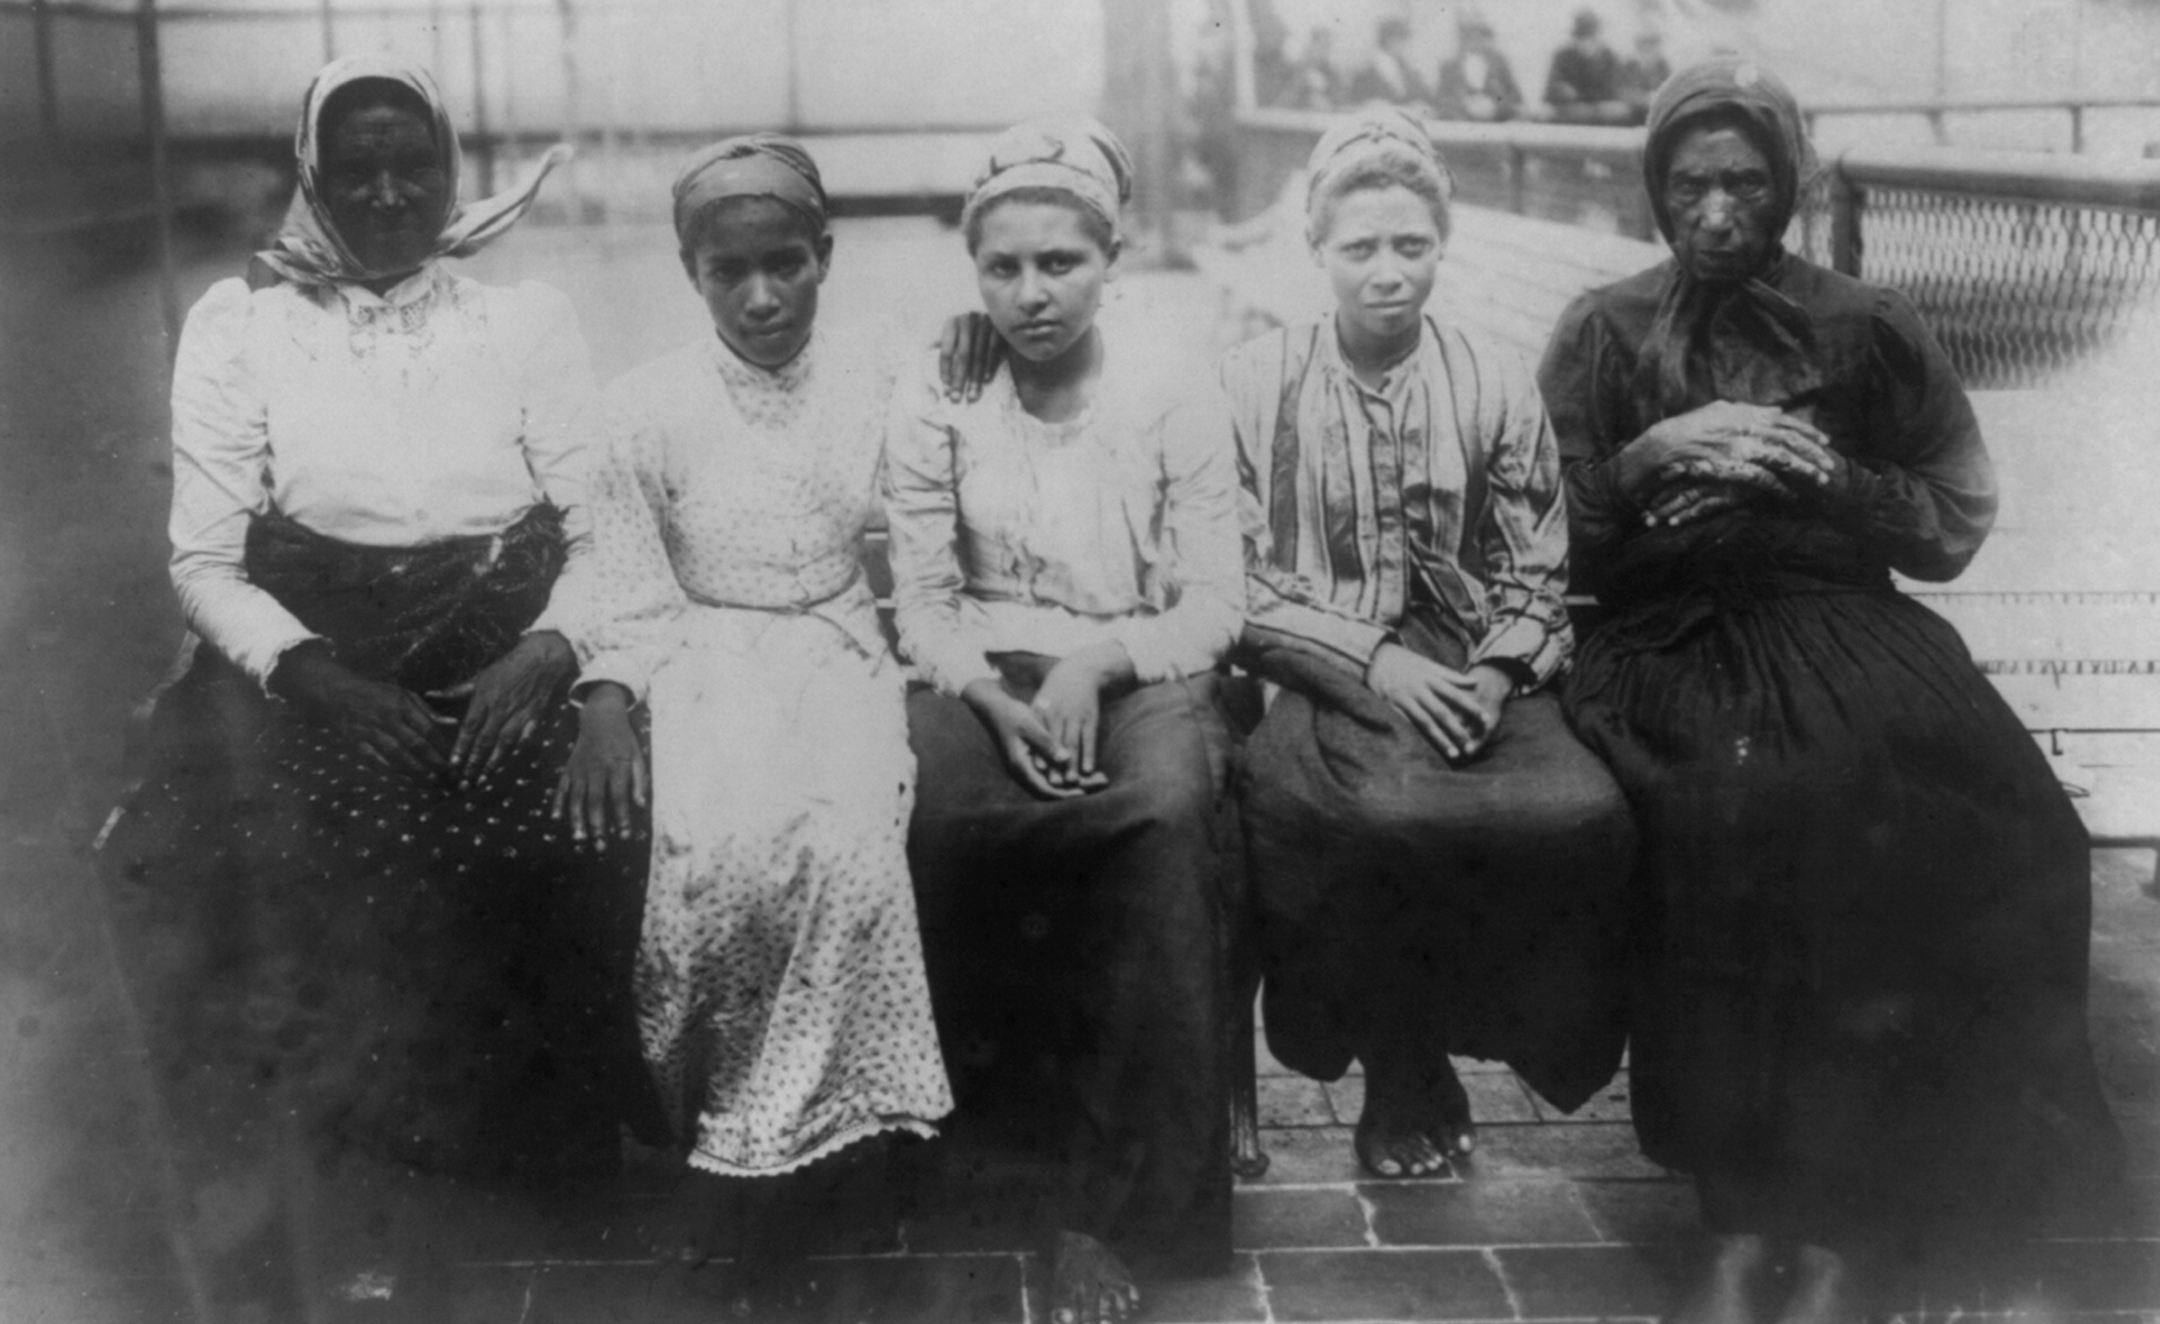 a black and white photograph from 1910 photograph showing five female immigrants sitting on dock at Ellis Island